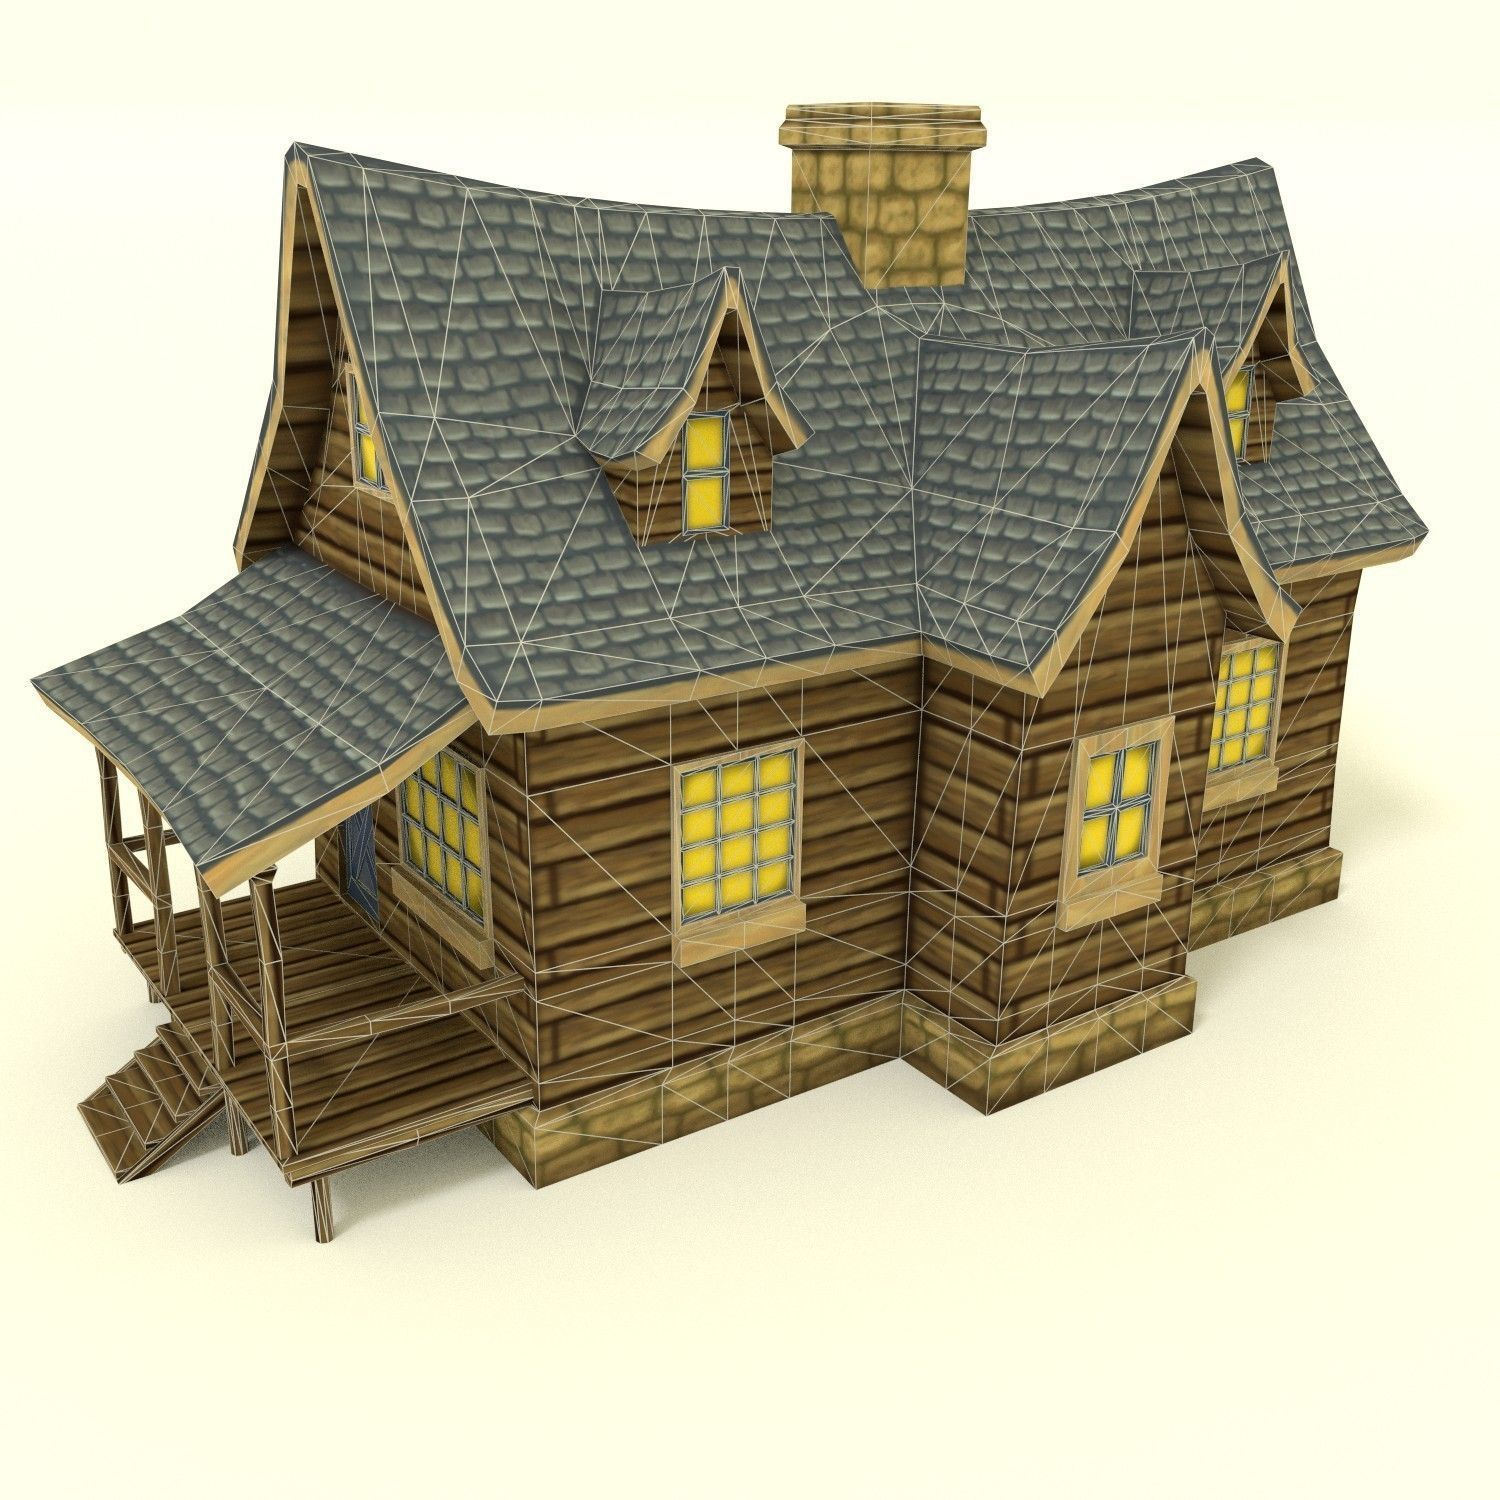 Low Poly Hand Painted House 3d Model Obj 3ds Fbx Blend Dae 3